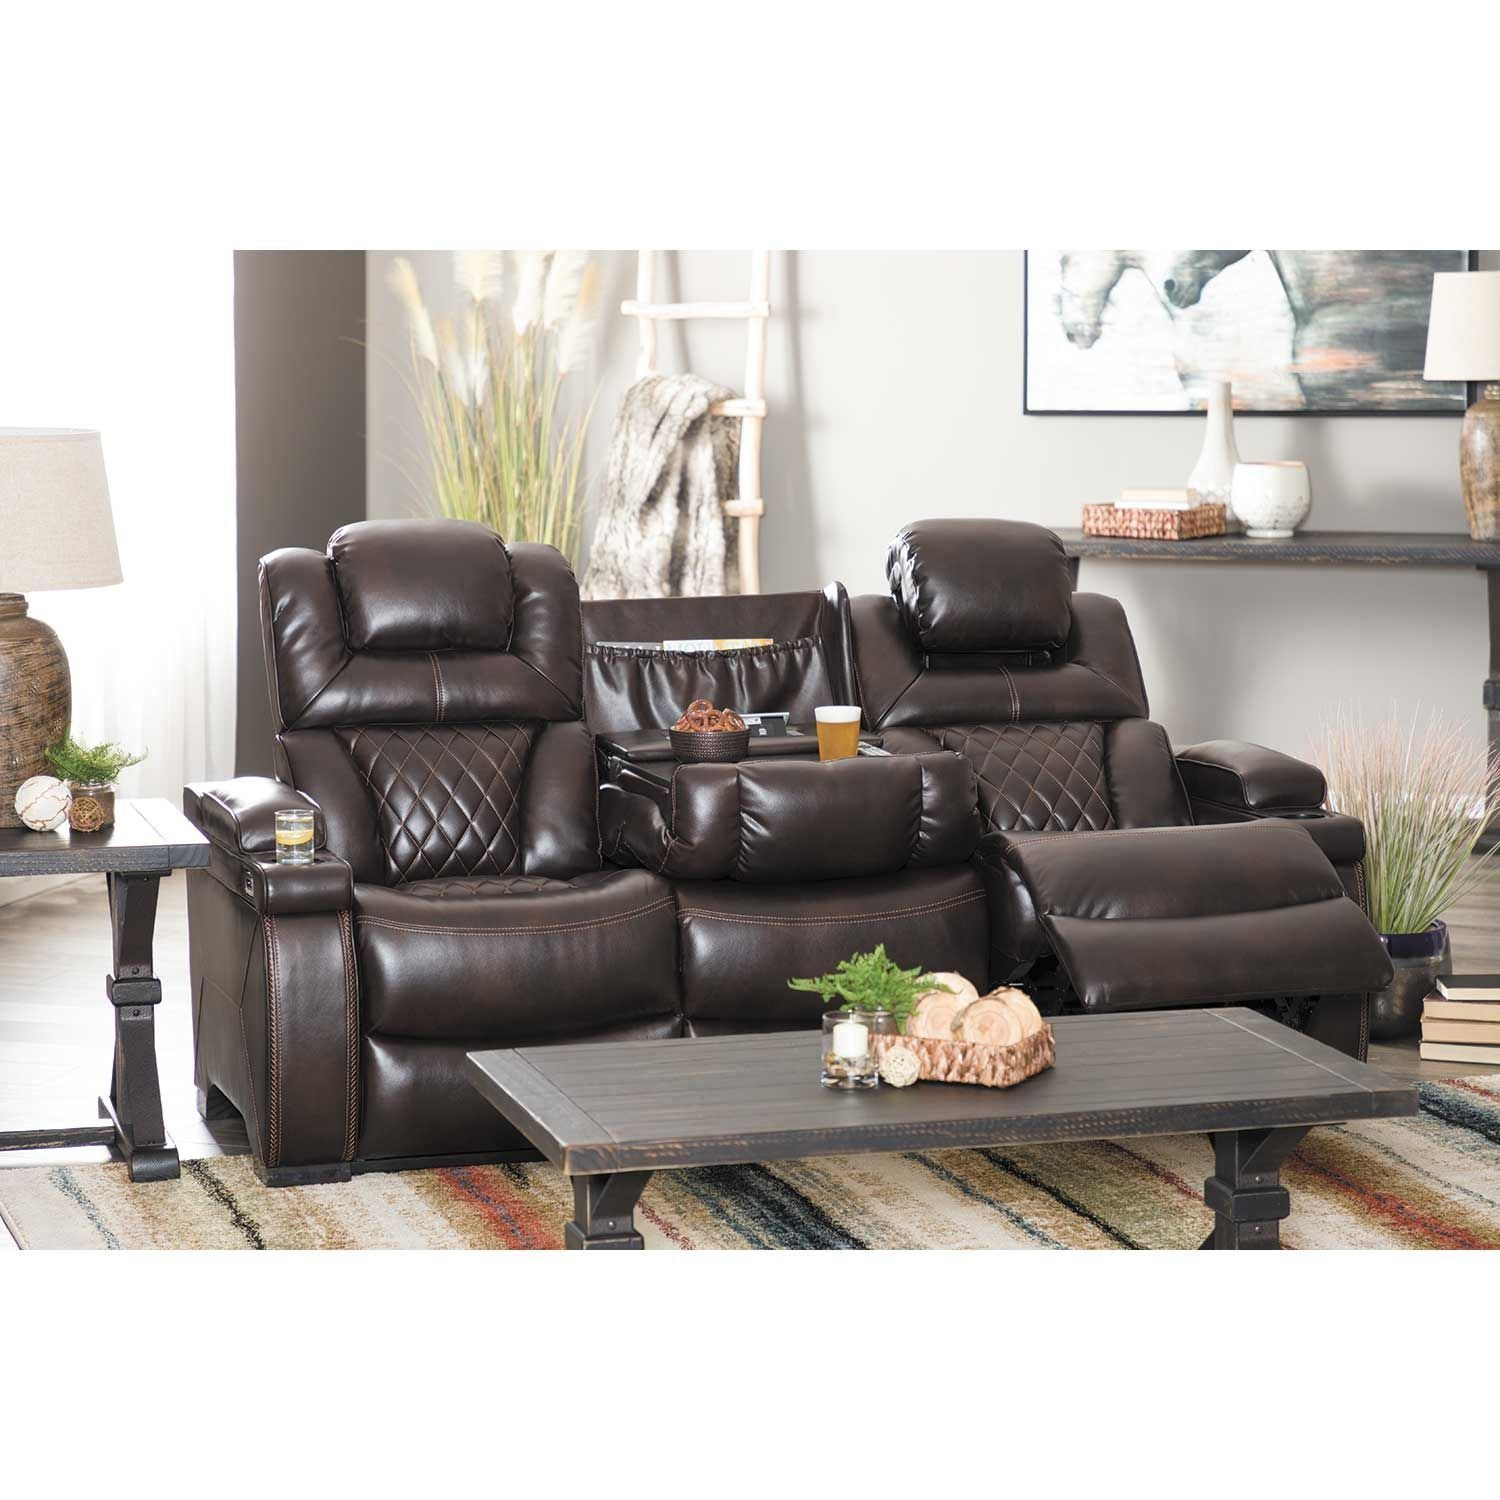 Ashley Furniture Stores Locations: Warnerton Power Reclining Console Loveseat With Adjustable